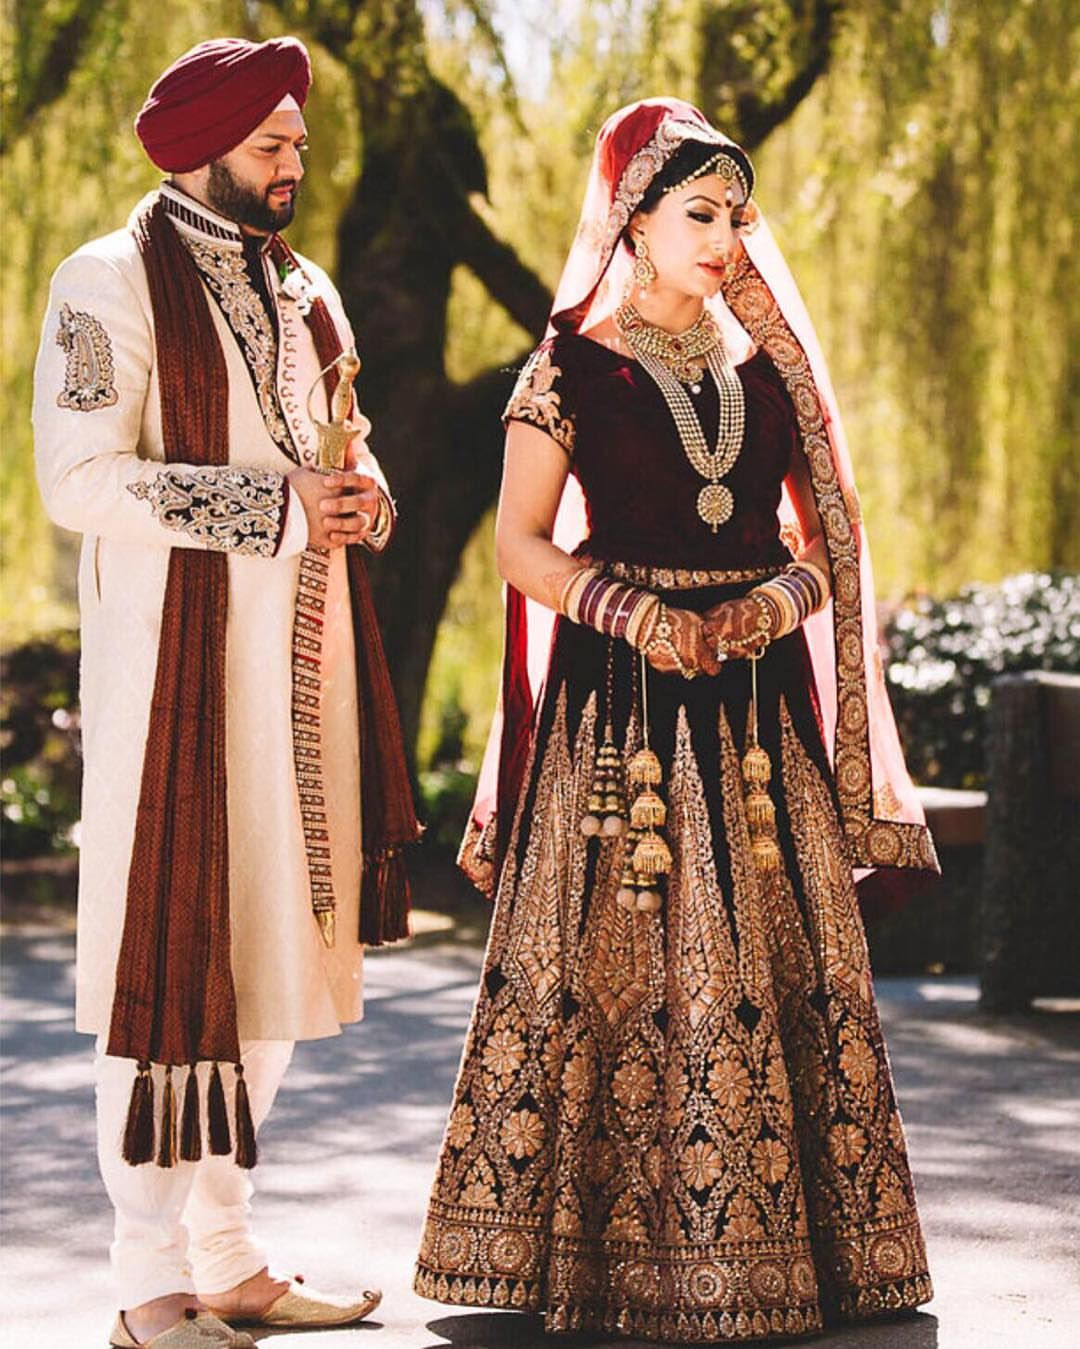 b57766be0d Wedding Lehenga With Beautiful Hand Embroidery Wedding Suits For Bride,  Bride Suit, Indian Wedding